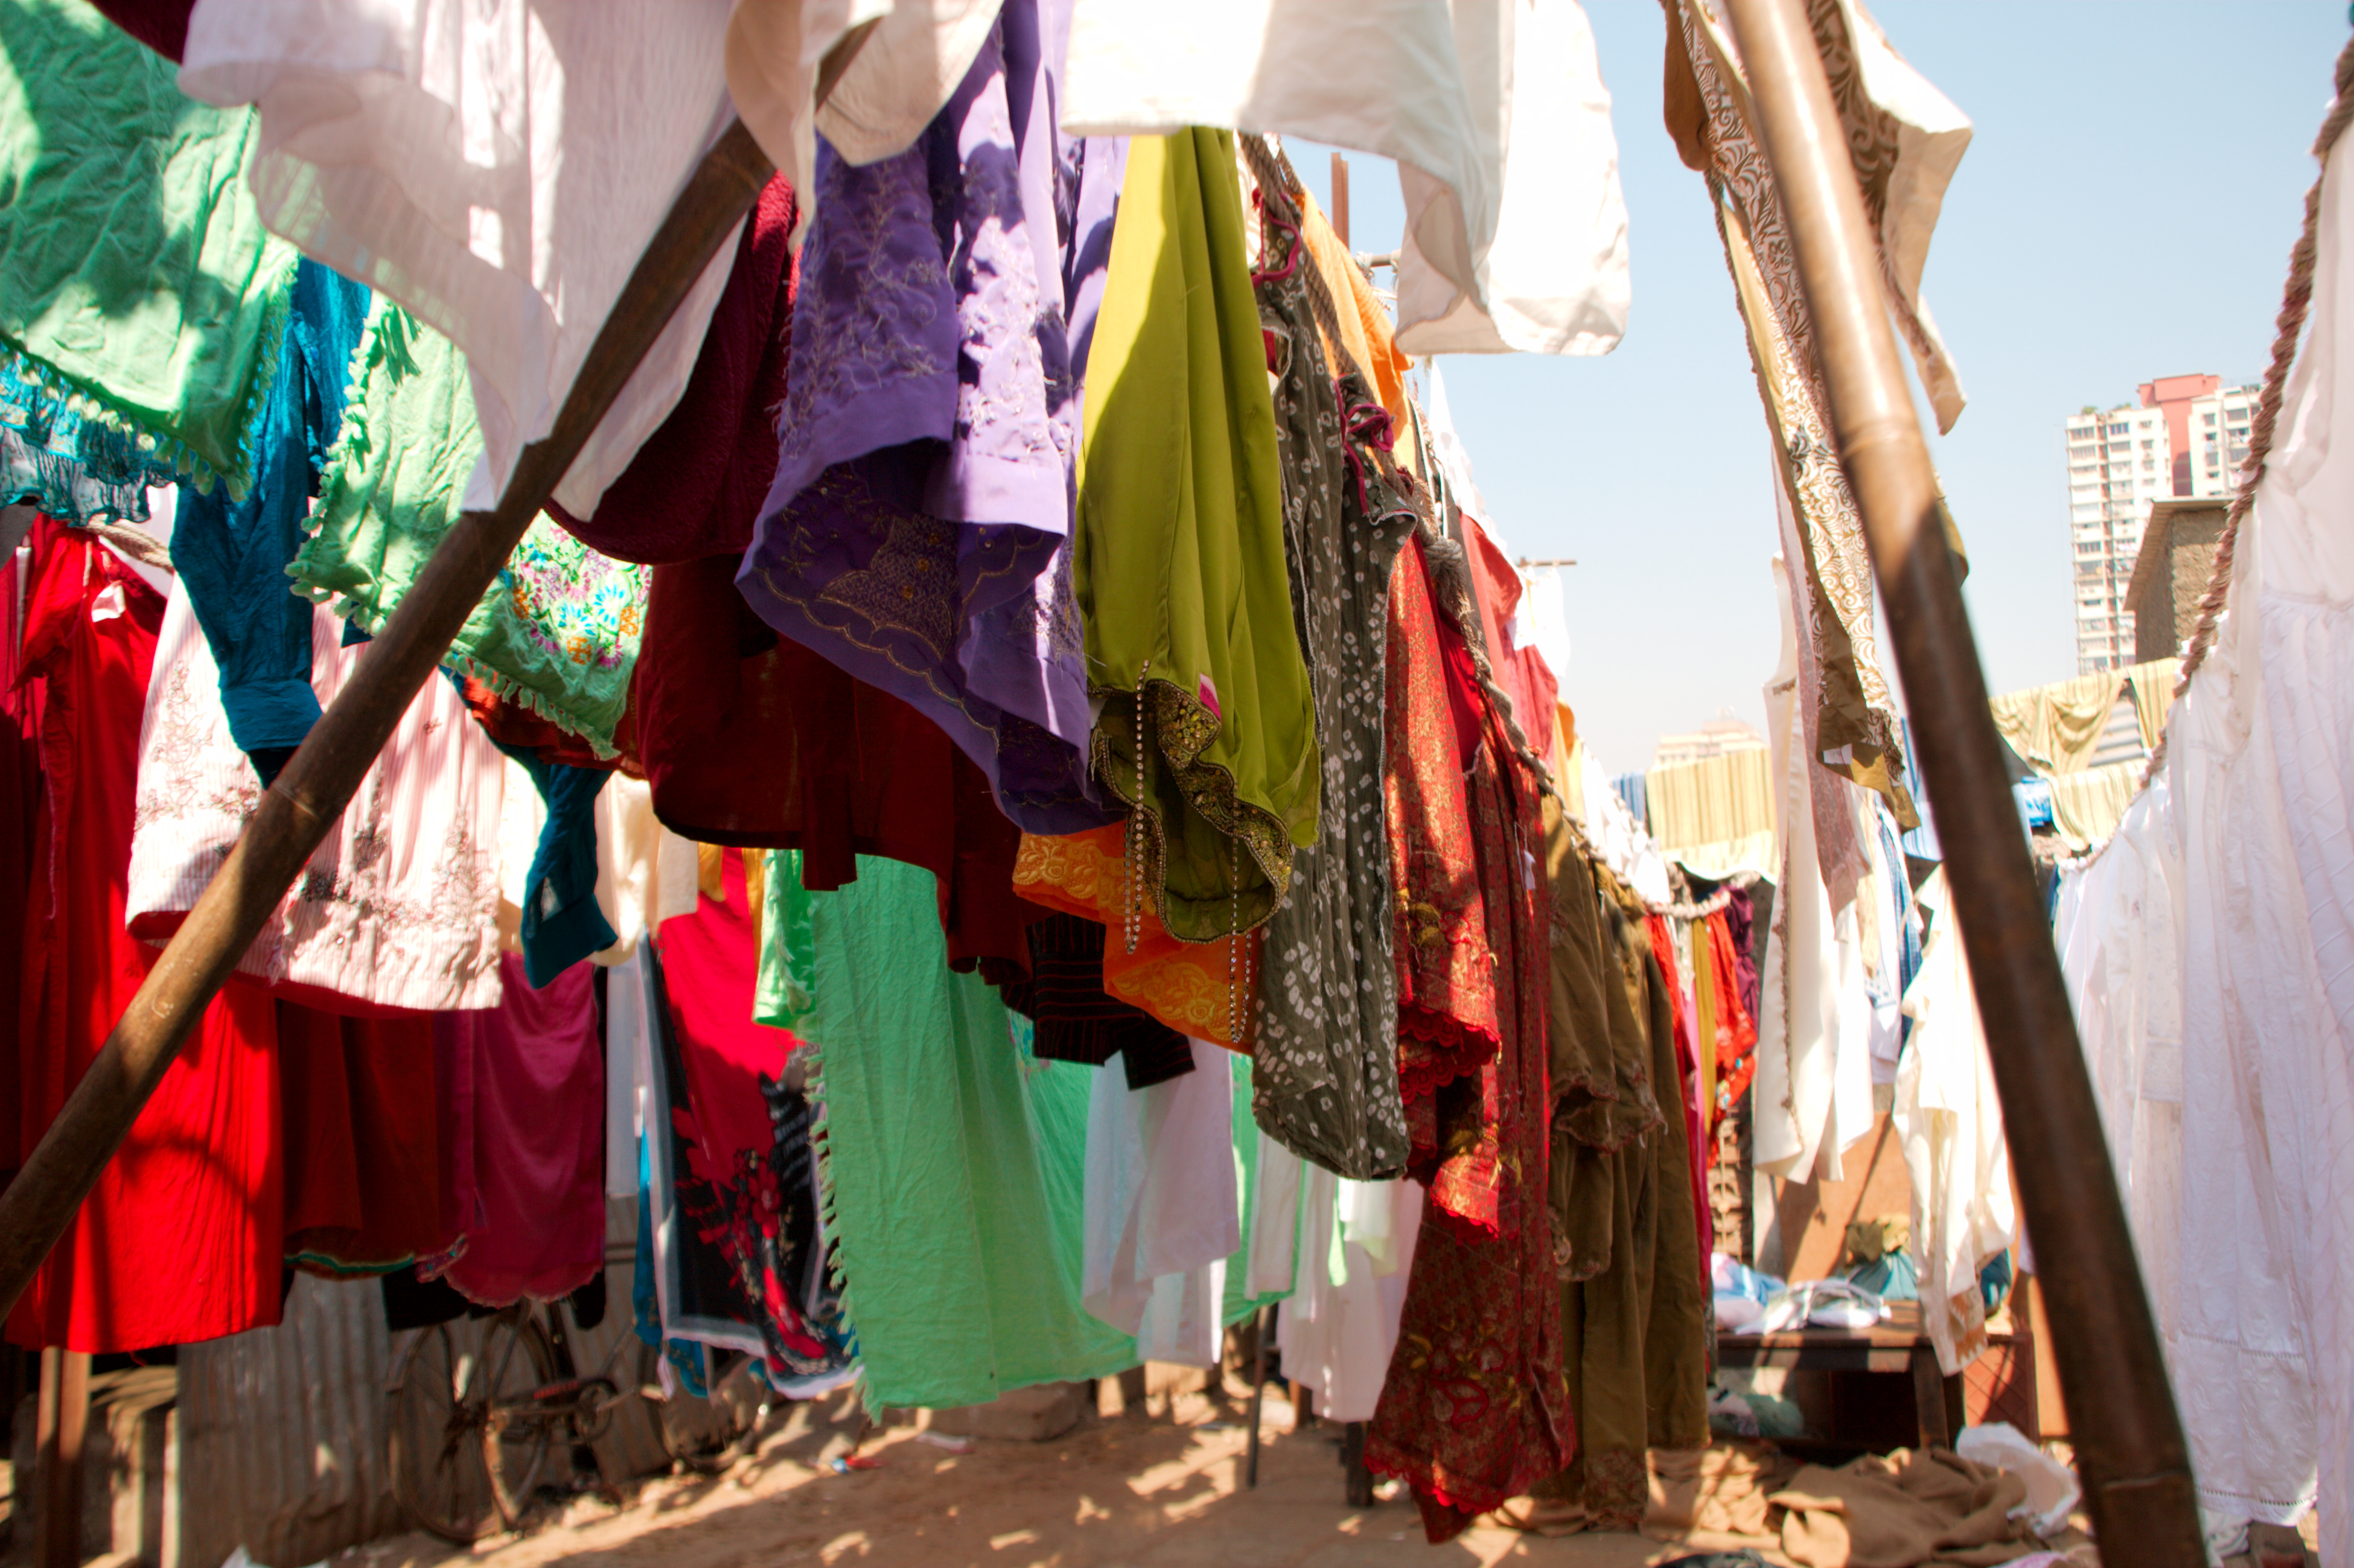 Fileclothes Hanging To Dryjpg Wikimedia Commons